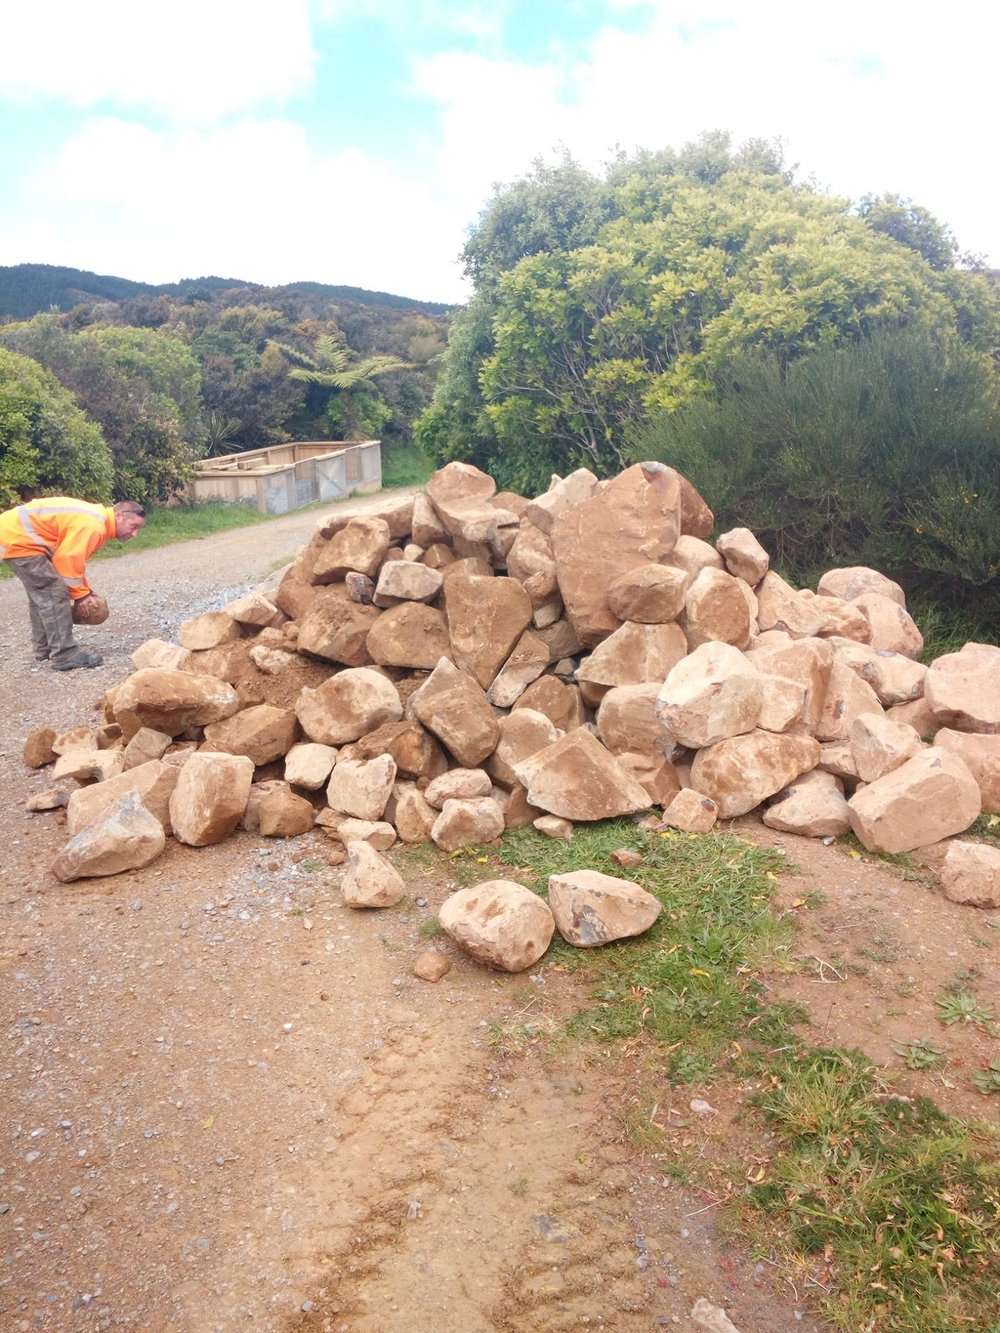 Big old pile of rocks